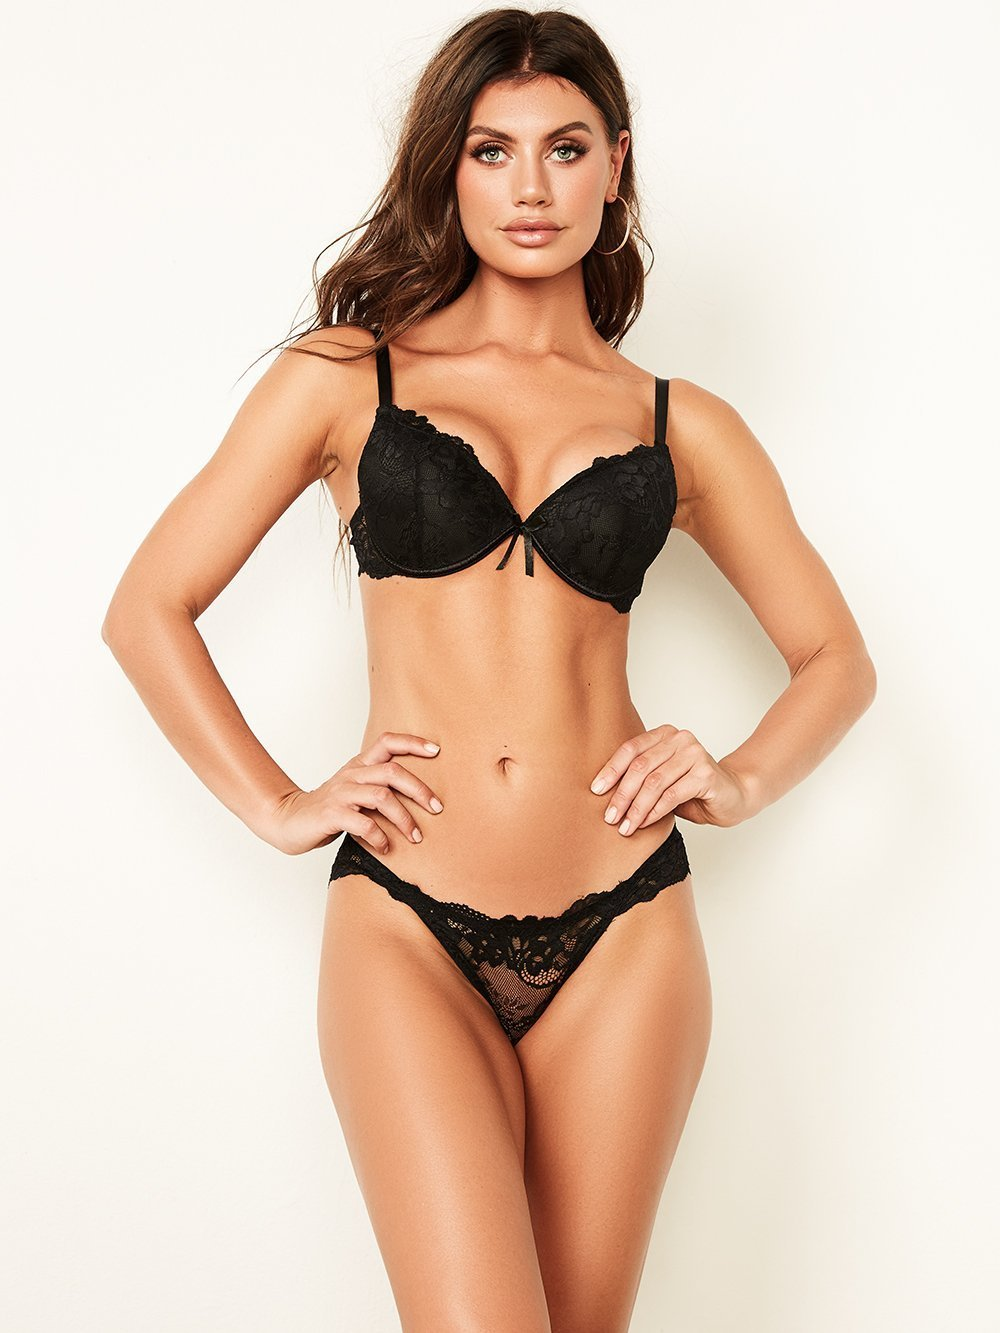 Simple All Over Lace Push-Up Bra - Youmita Lingerie